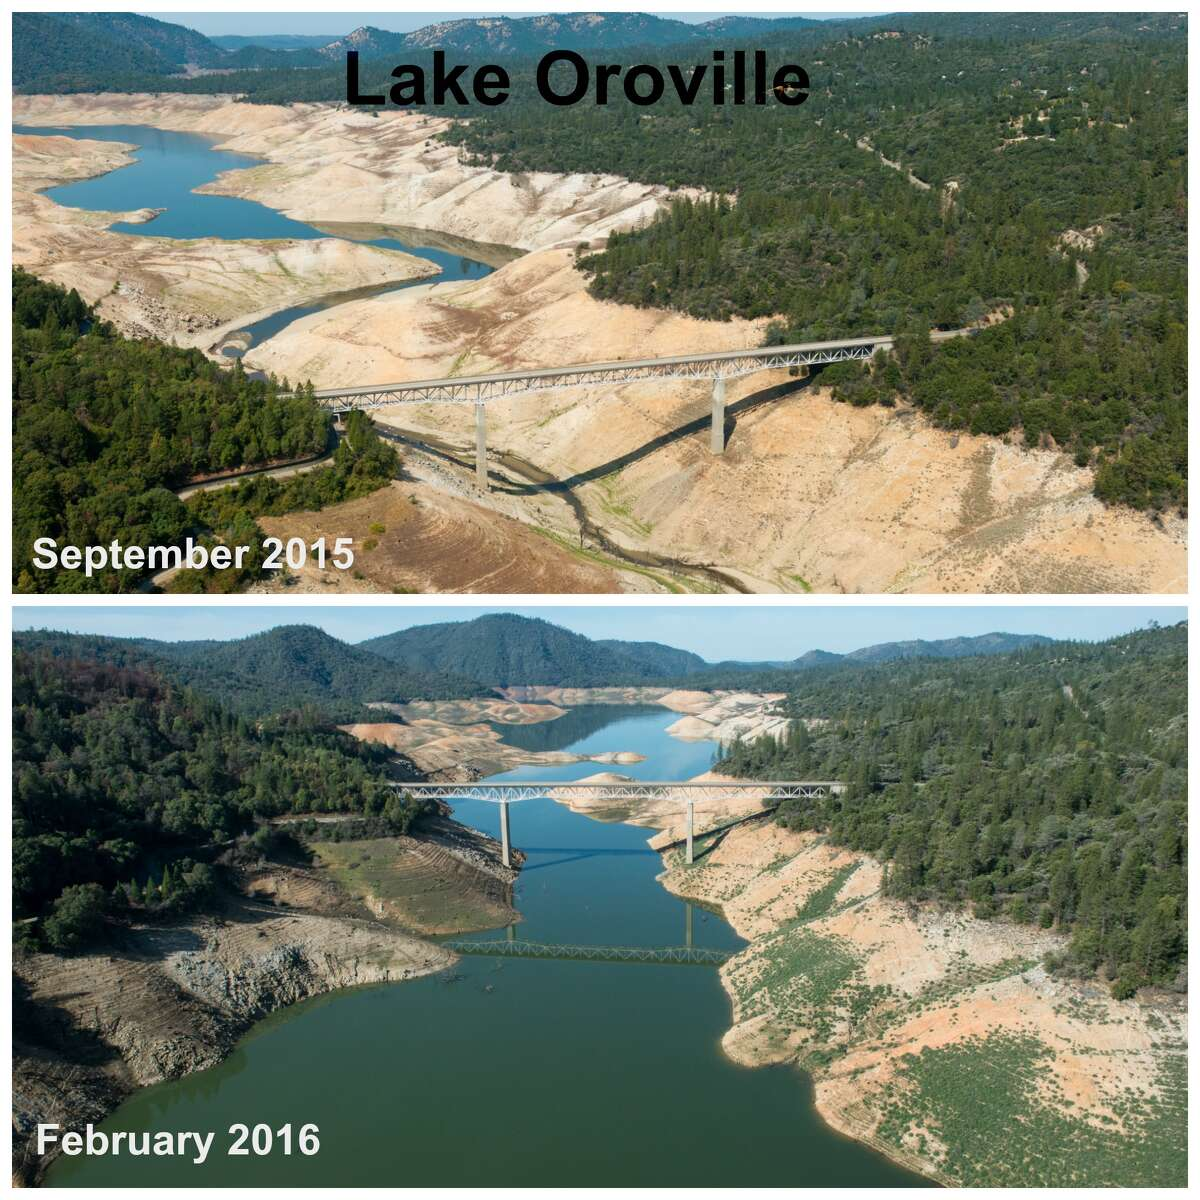 Lake Oroville Top: The west view of Lumpkin Rd. crossing over a bridge at Lake Oroville in Oroville, Calif. on September 8, 2015. On this day, the water storage was 1,057,971 acre feet, 30% of total capacity, and 46% of historical average for this date. Lake Oroville is a reservoir formed by the Oroville Dam impounding the Feather River, located in Butte County, northern California. (Florence Low) Bottom: The west view of Lumpkin Rd. crossing over a bridge at Lake Oroville in Oroville, Calif. on February 25, 2016. On this day, the water storage was 1,828,048 acre feet, 52% of total capacity, and 75% of historical average for this date. Lake Oroville is a reservoir formed by the Oroville Dam impounding the Feather River, located in Butte County, northern California.